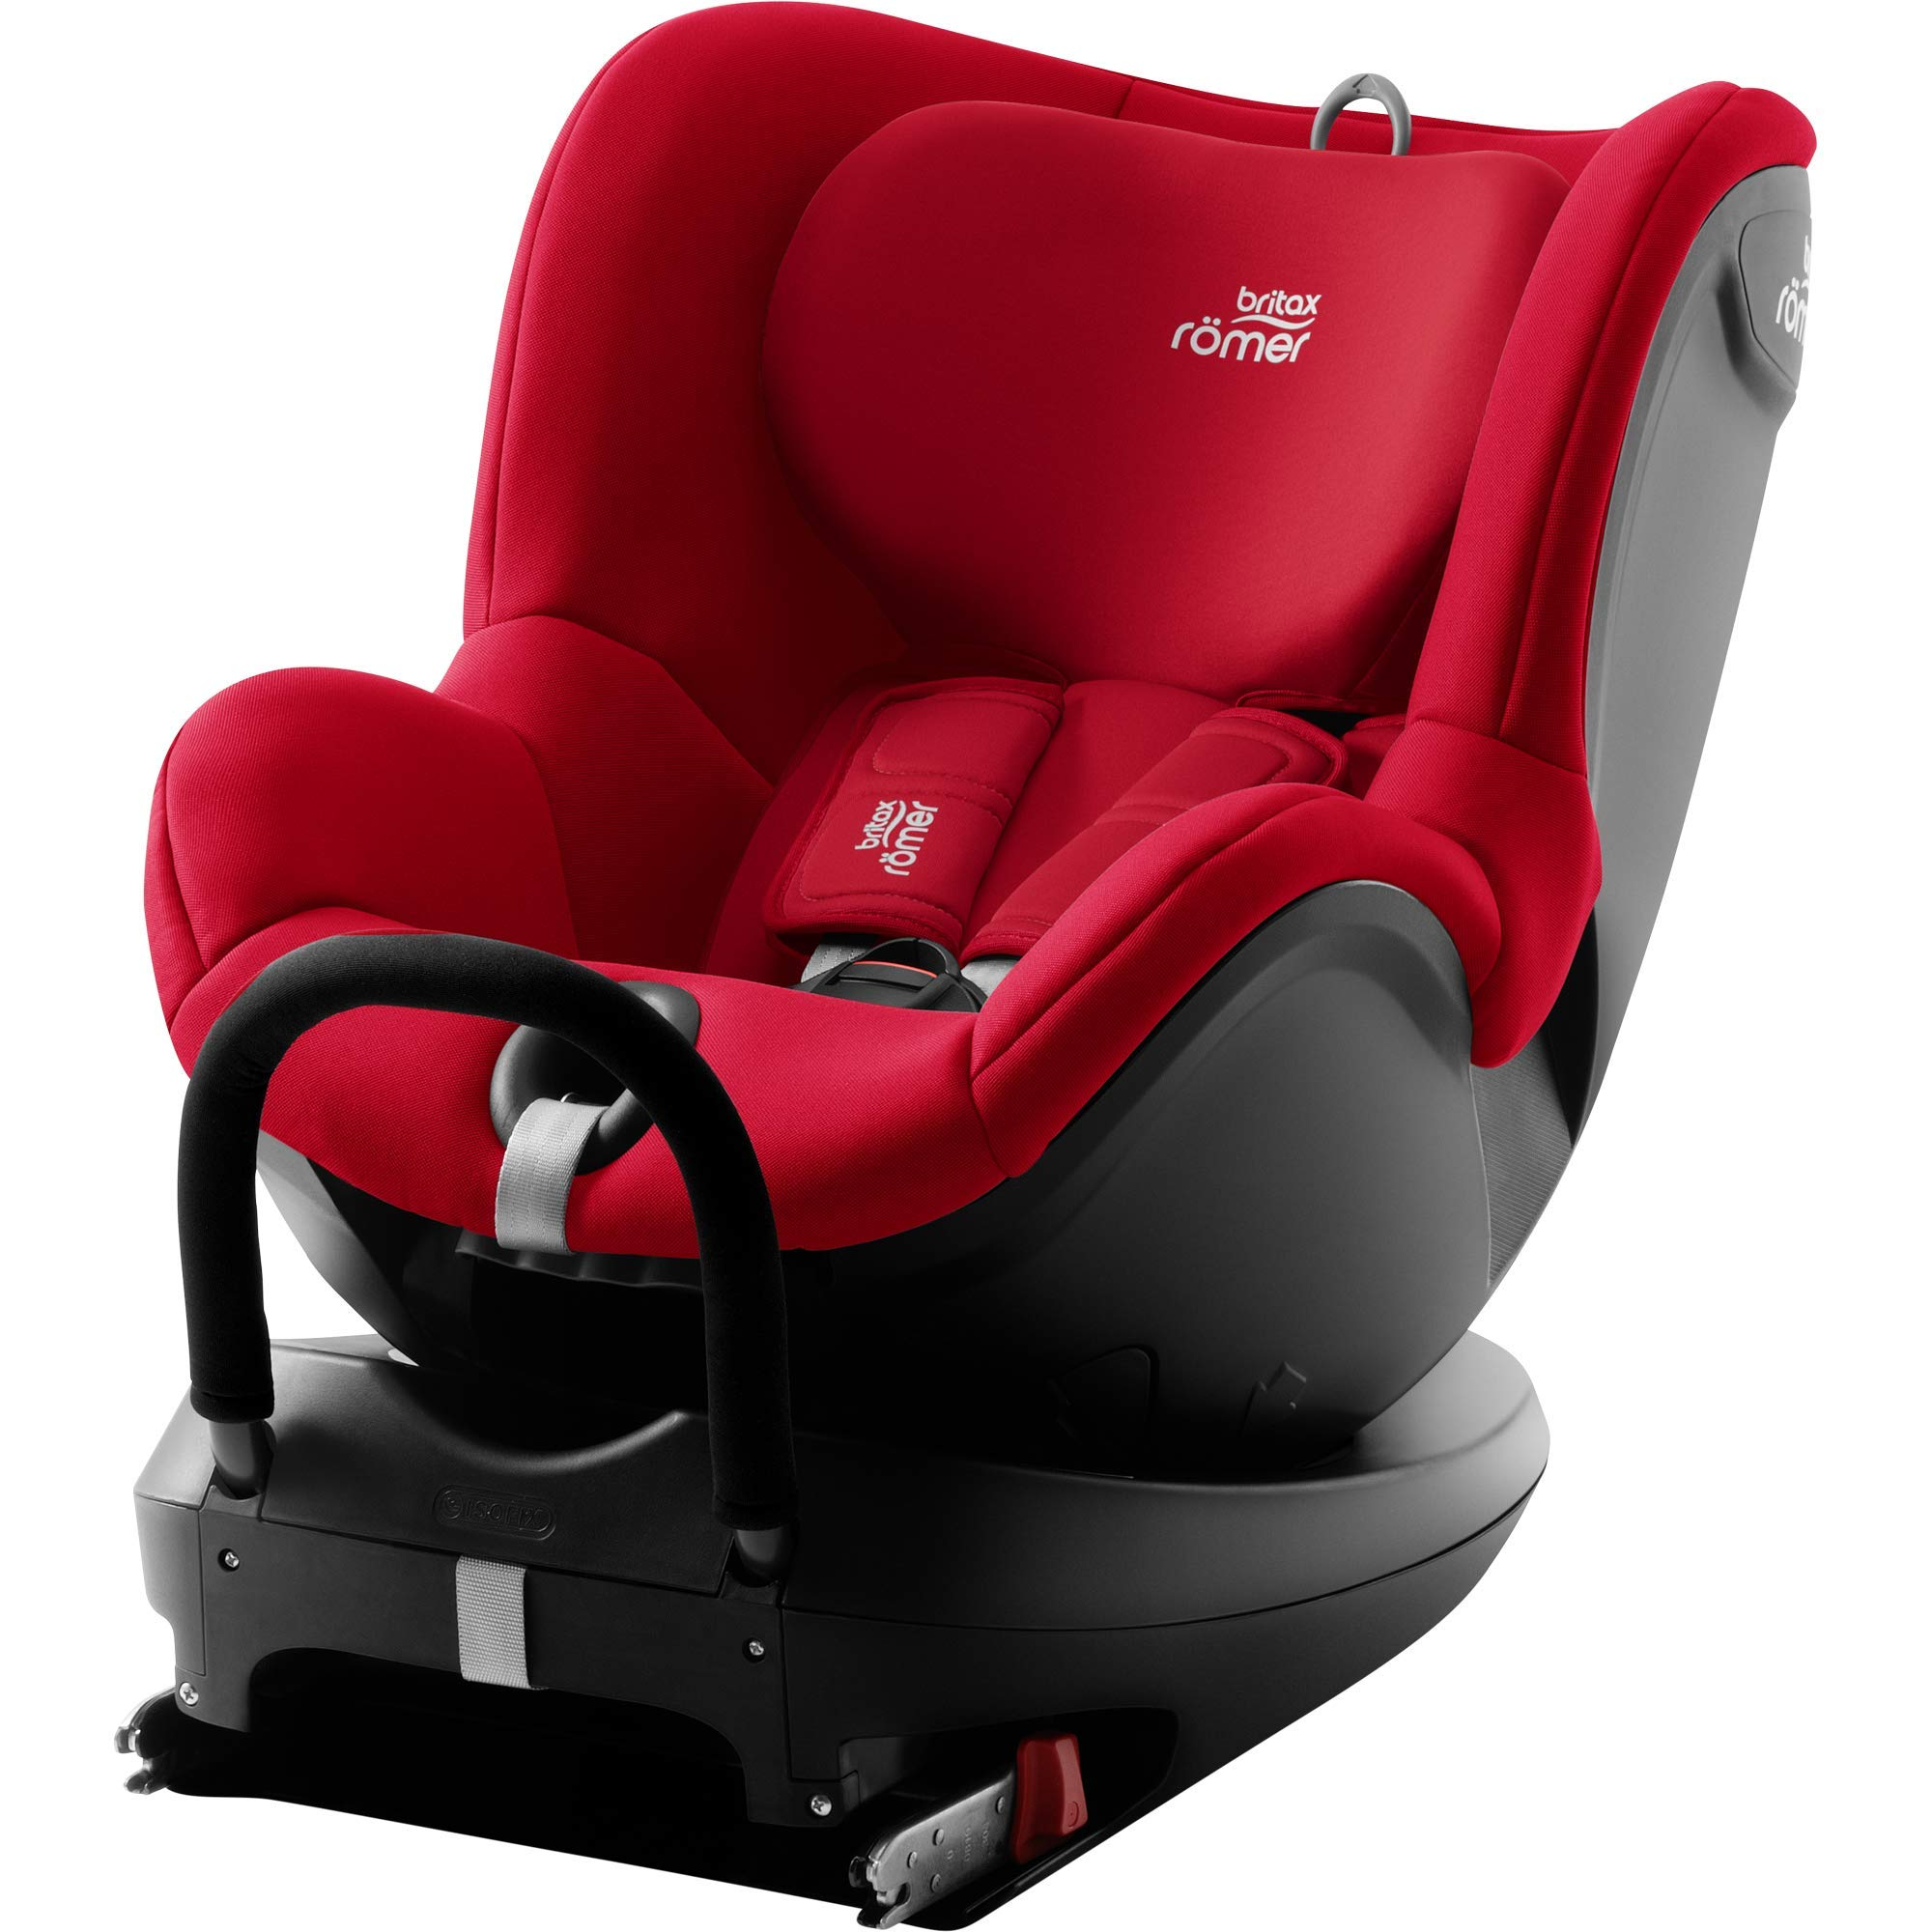 Britax Römer Car Seat DUALFIX 2 R, Swivel, ISOFIX, Group 0+/1 (Birth - 18 kg), Baby 0 to 4 Years Old, Fire Red